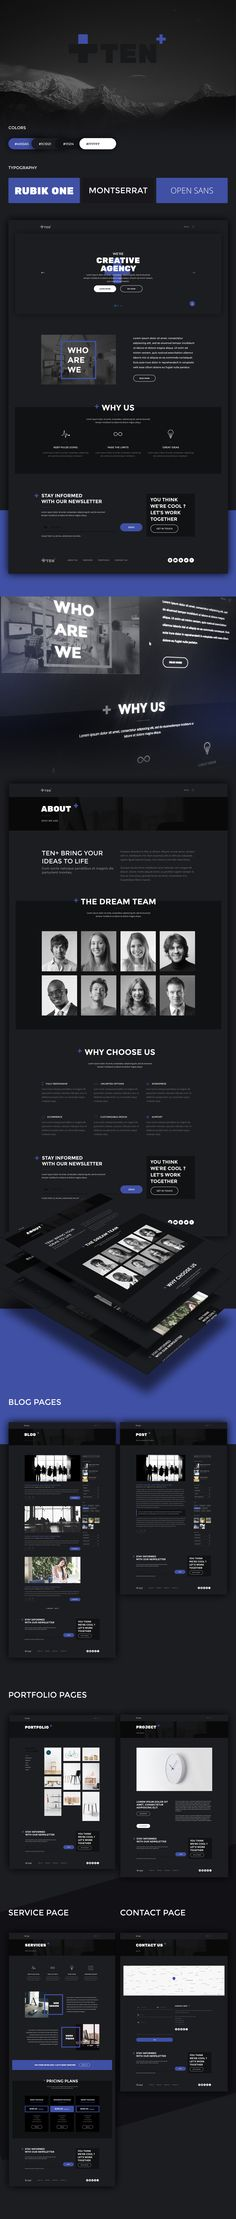 Download now PSD files & HTML Files for FREE.Ten+ is a creative template for digital agencies.